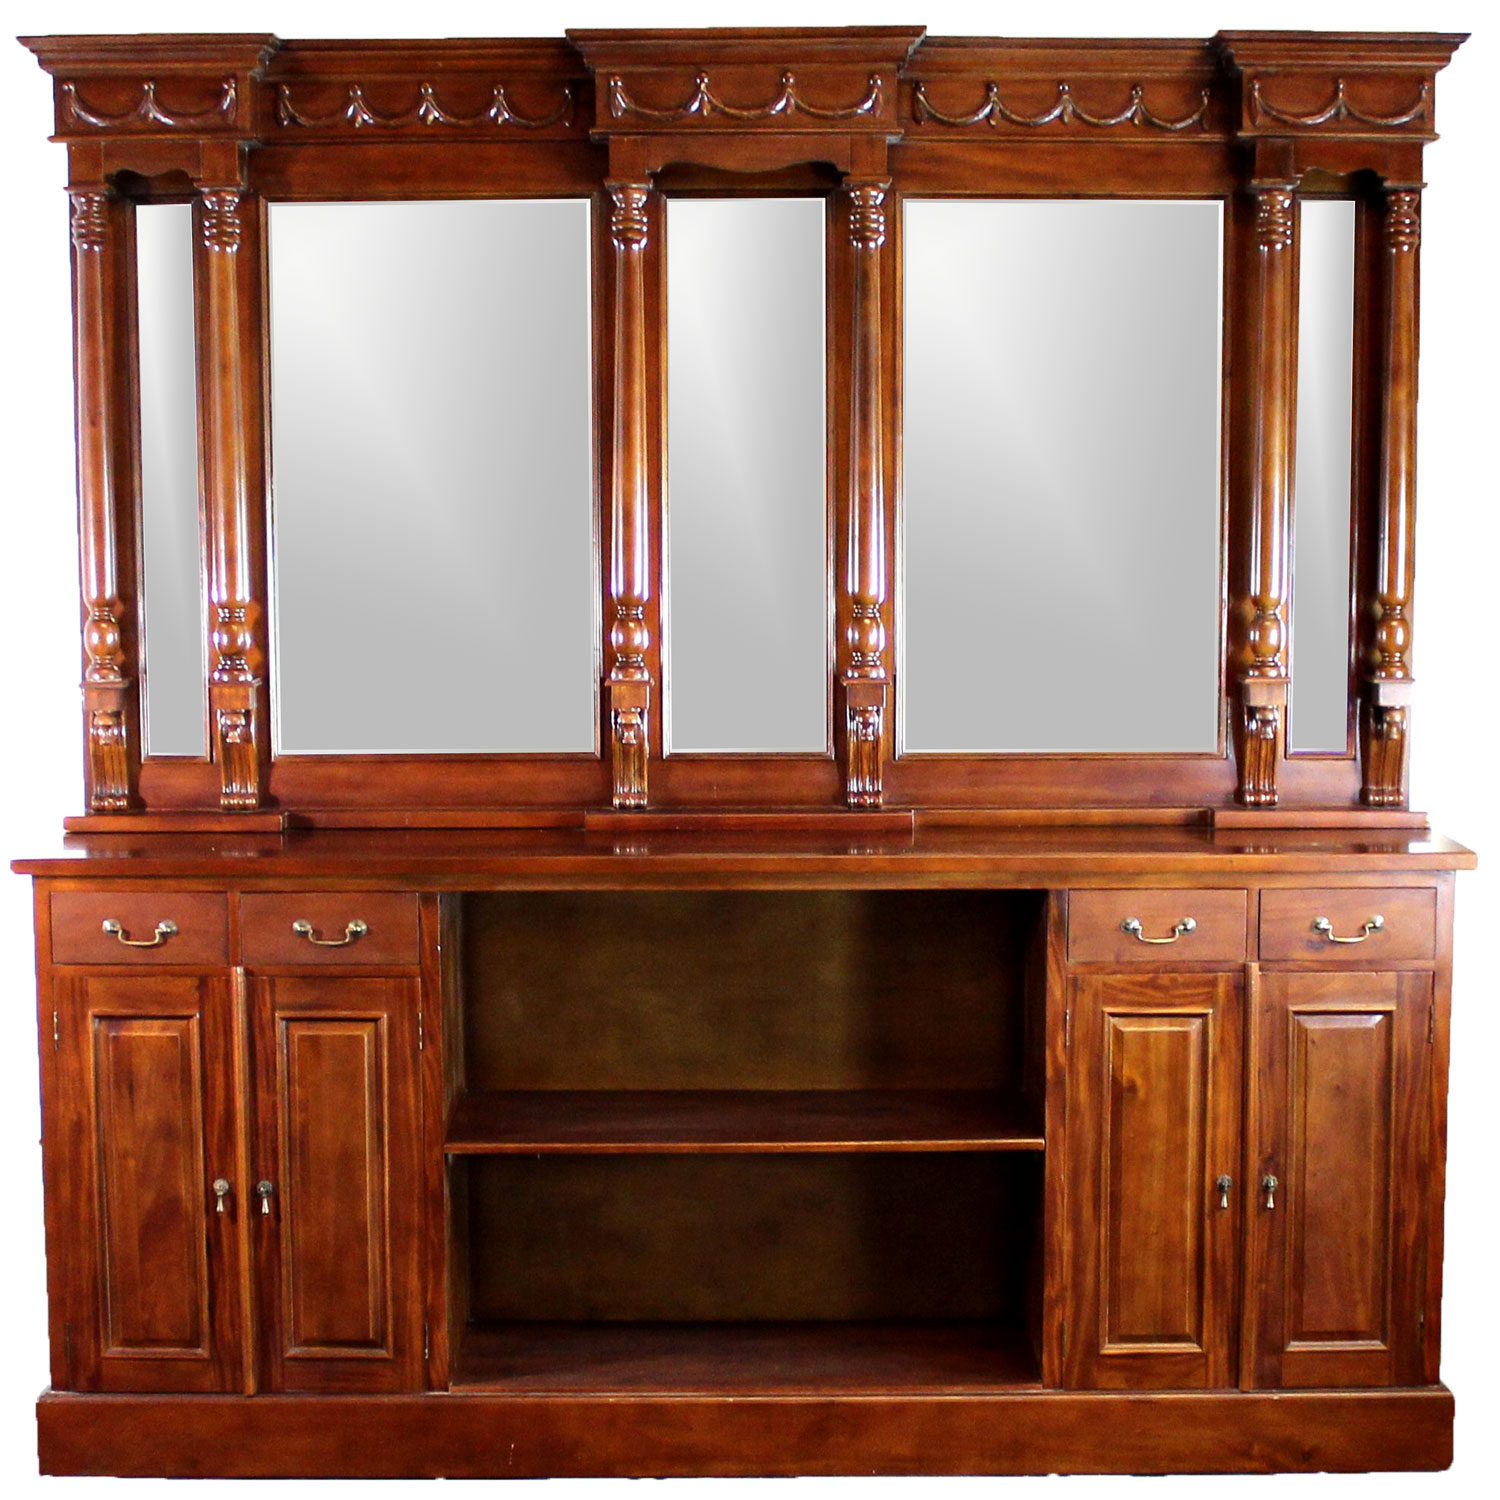 Bar Hutch For Sale Vintage Broyhill Sculptra Very Rare Dining Hutch And Bar For Sale Keshia